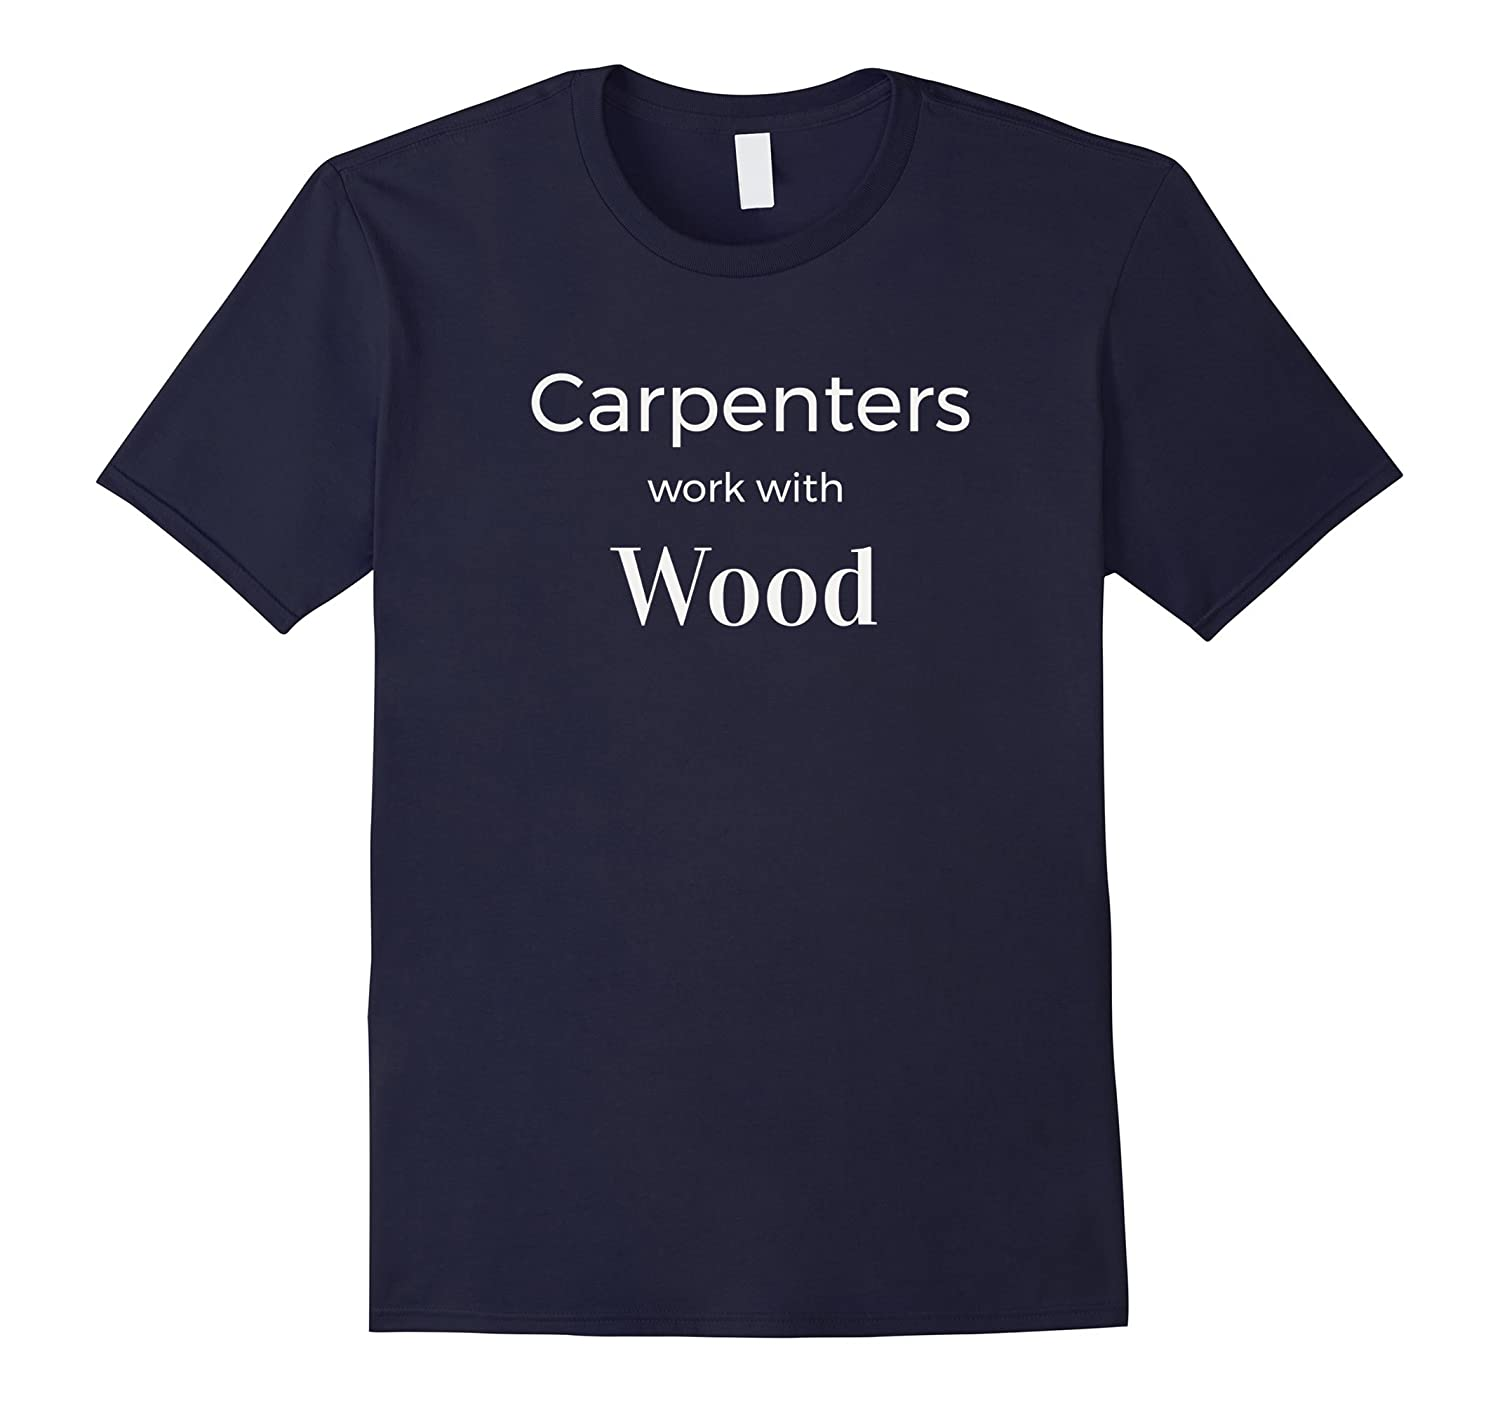 Carpenters work with Wood t-shirt-TD